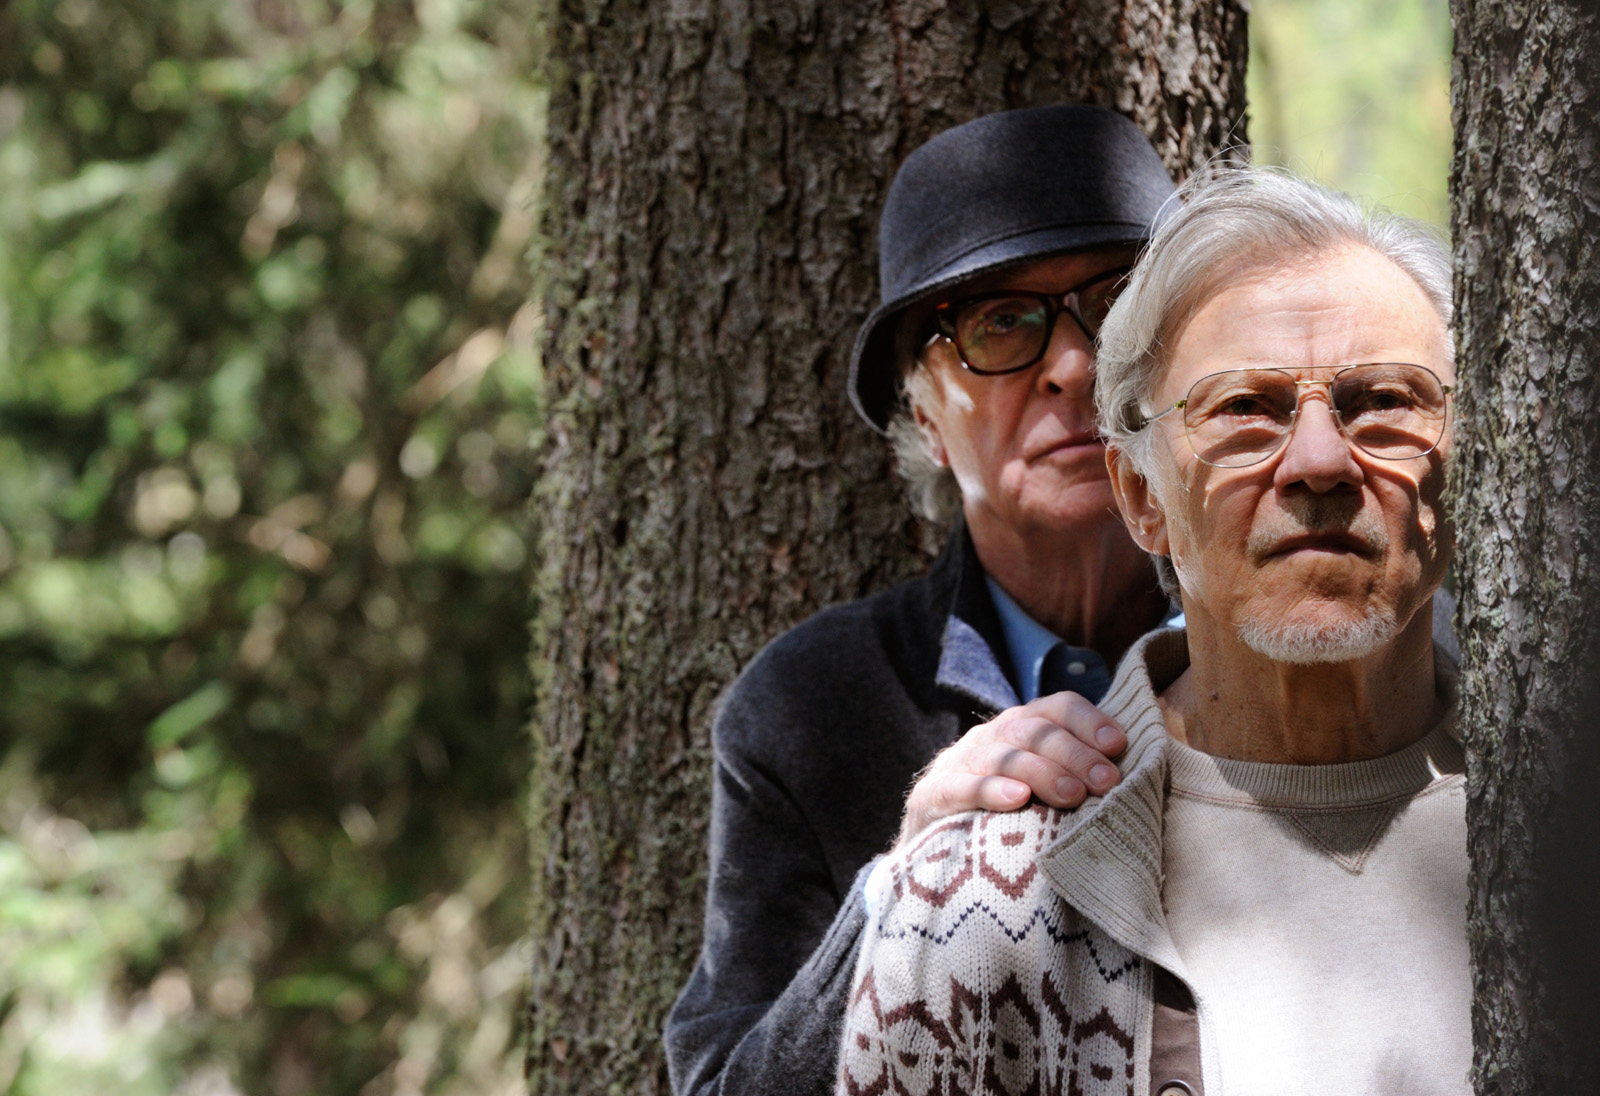 Youth - Harvey Keitel et Michael Caine